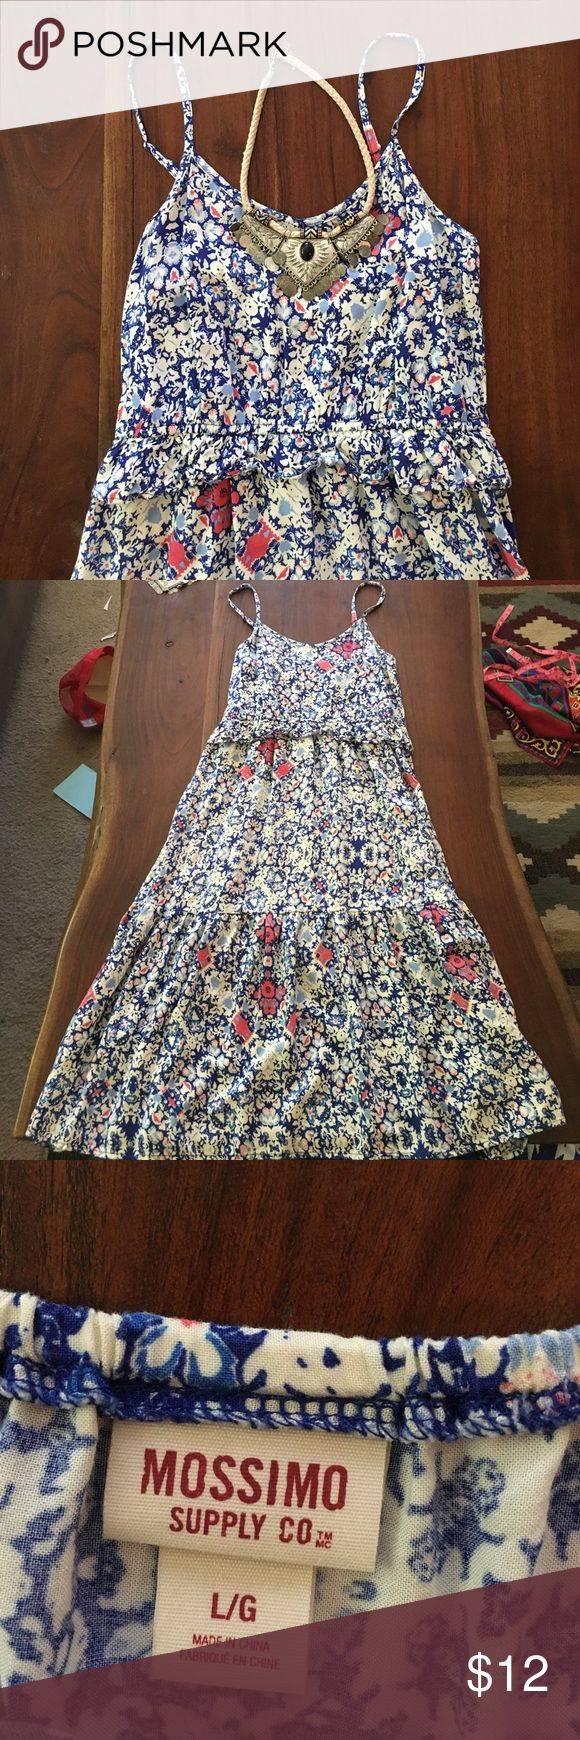 Blue and white summer dress This float boho dress is perfect for a day you are going to be out and about and you don't want to mess with your outfit the whole day. Soft fabric and casual fit, perfect to dress up with some accessories! Will fit a medium as well as large. Straps are adjustable length is 43 inches. Dresses